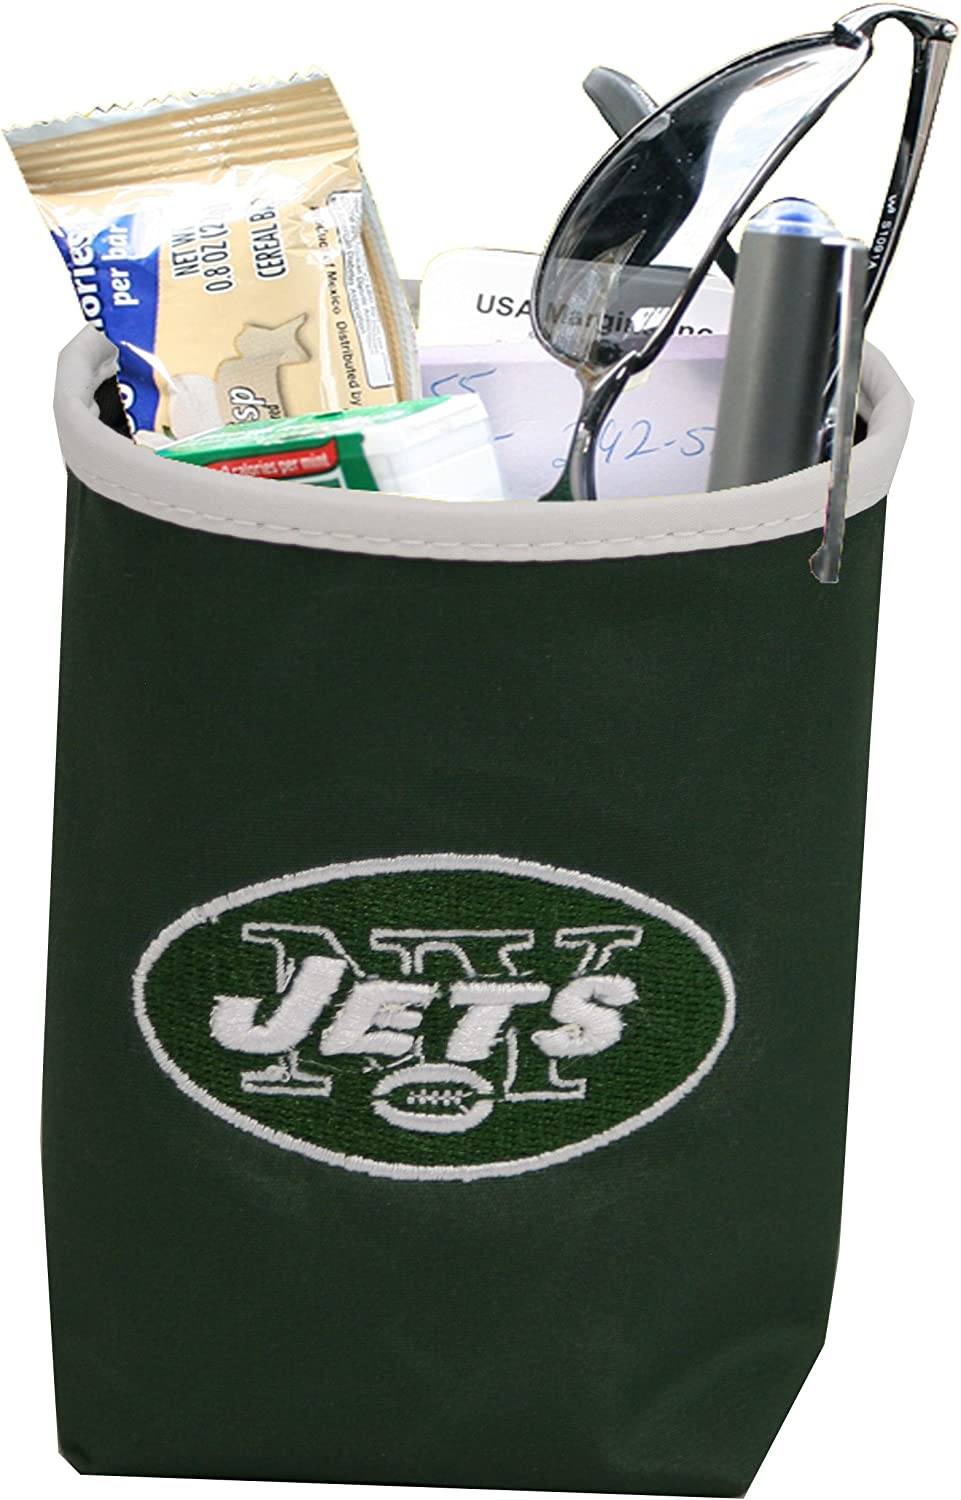 NFL New York Jets Logo Car Pocket Organizer  by Little Earth